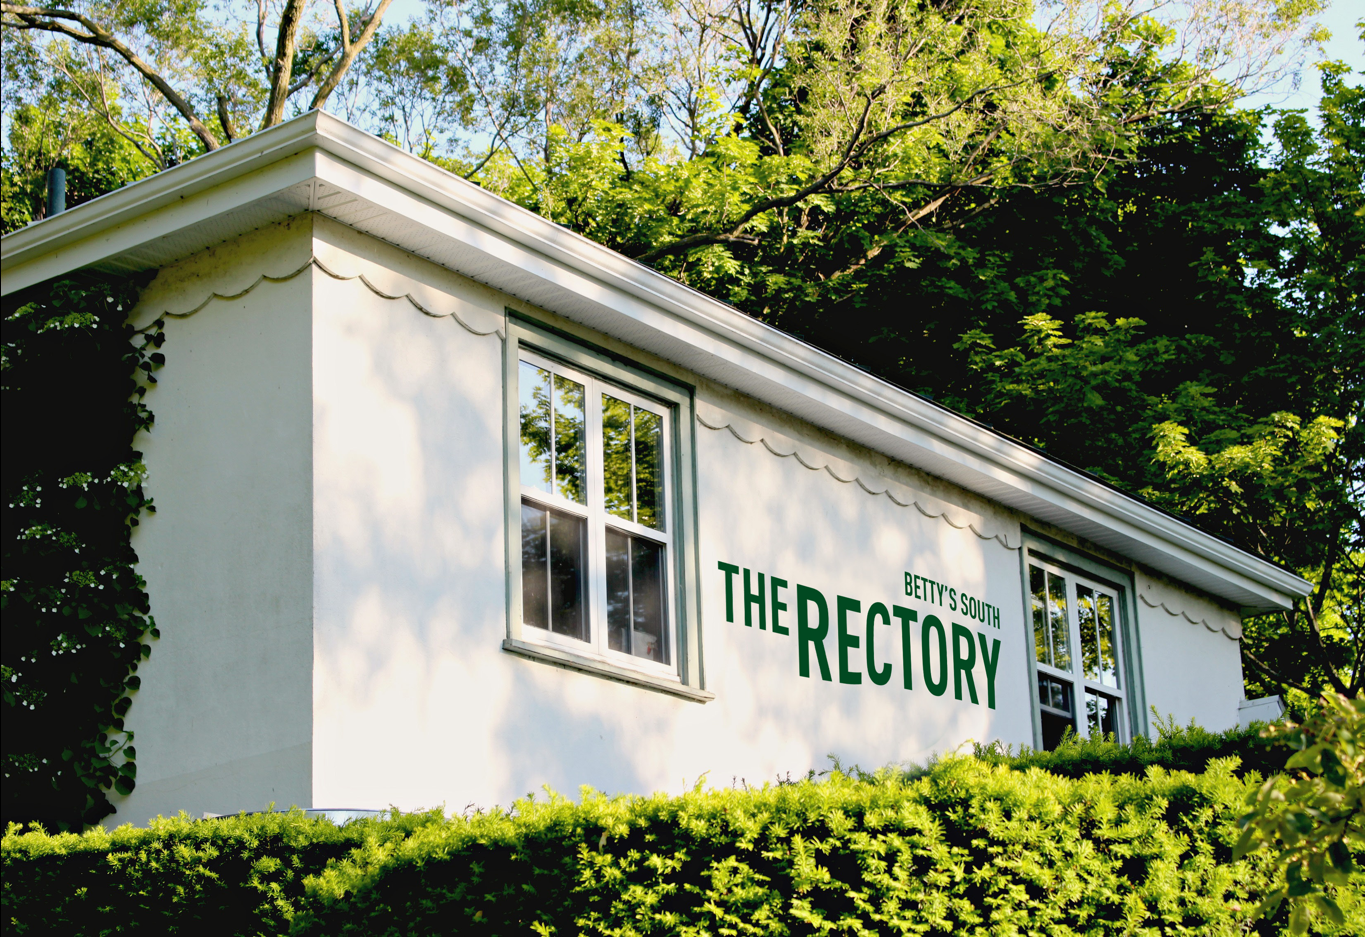 the rectory toronto bar logo painted on wall